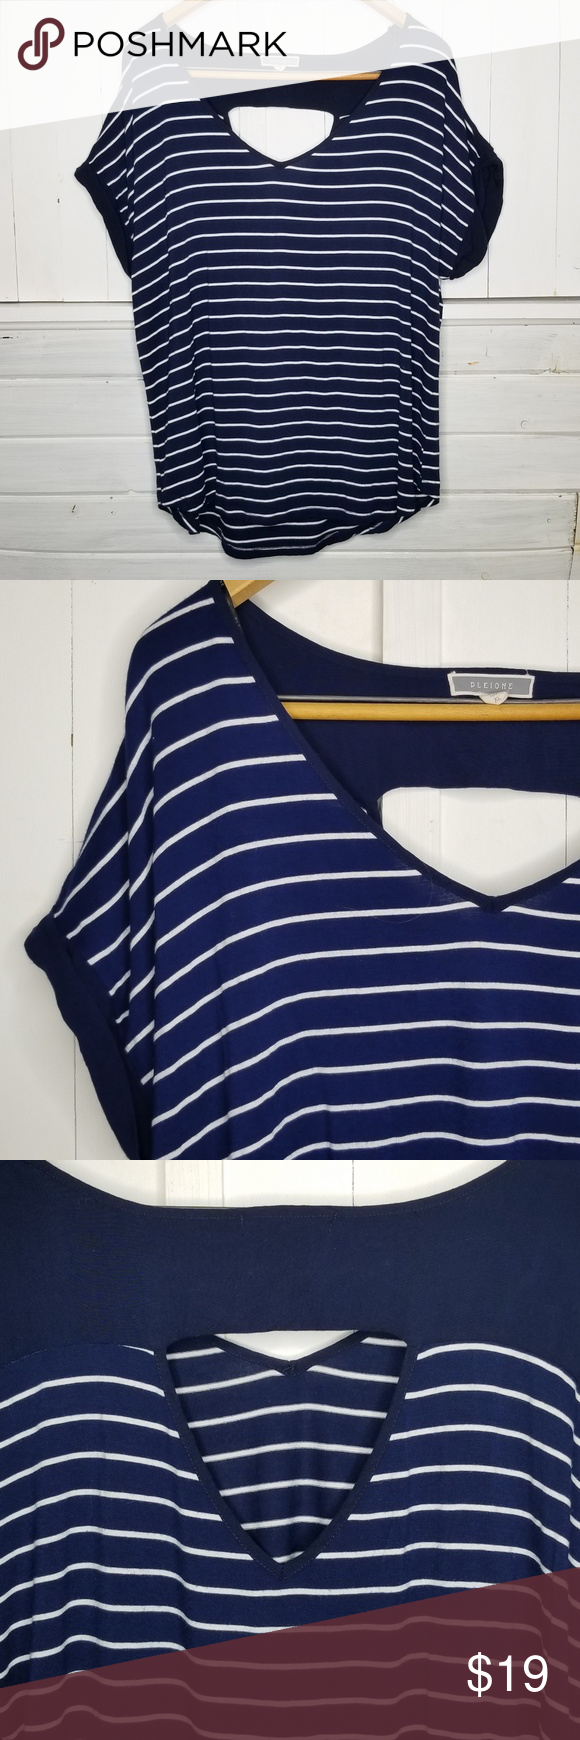 63fe3fba8282b Pleione Blue Striped Blouse XL Pleione Dark blue and white short sleeved  striped blouse with open